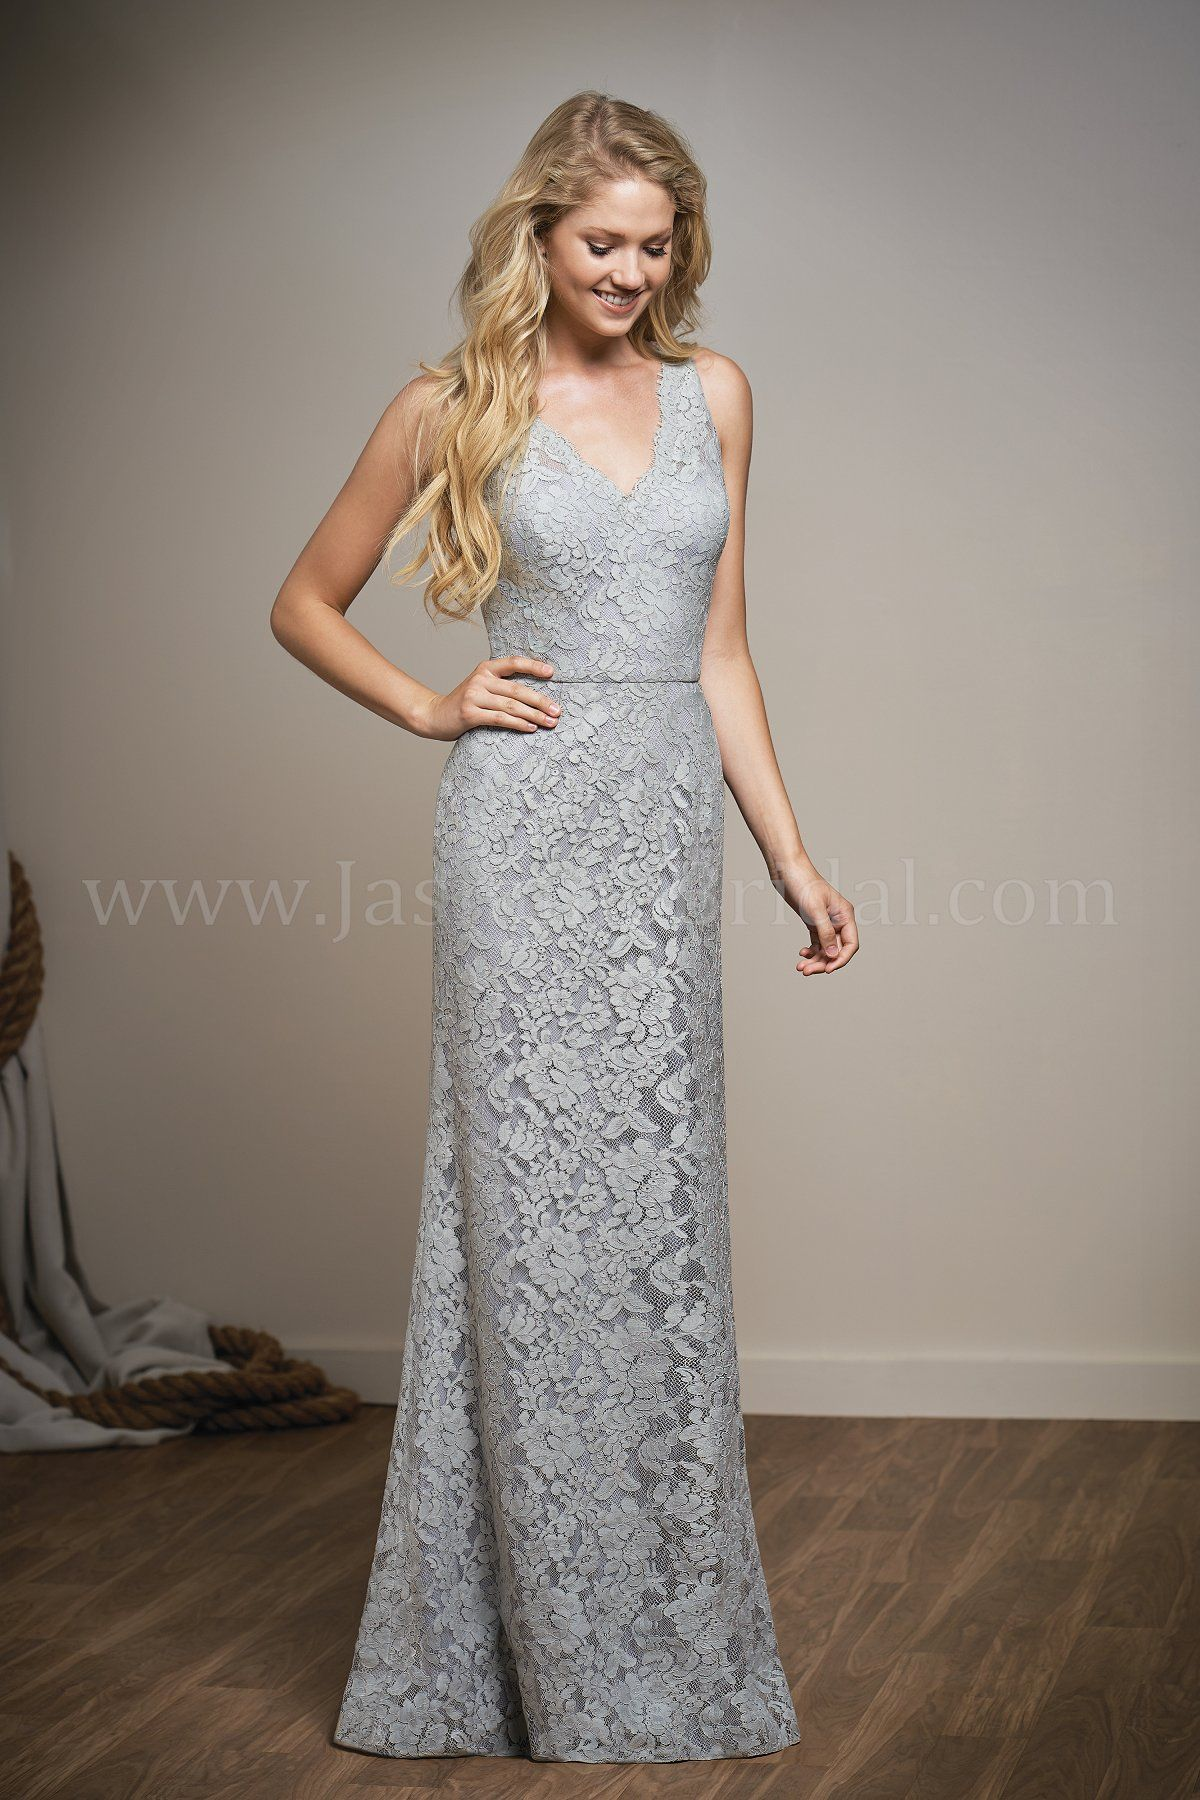 Jasmine bridal belsoie style l204008 in silver belsoie lace jasmine belsoie bridesmaid dress style available online for purchase ombrellifo Choice Image